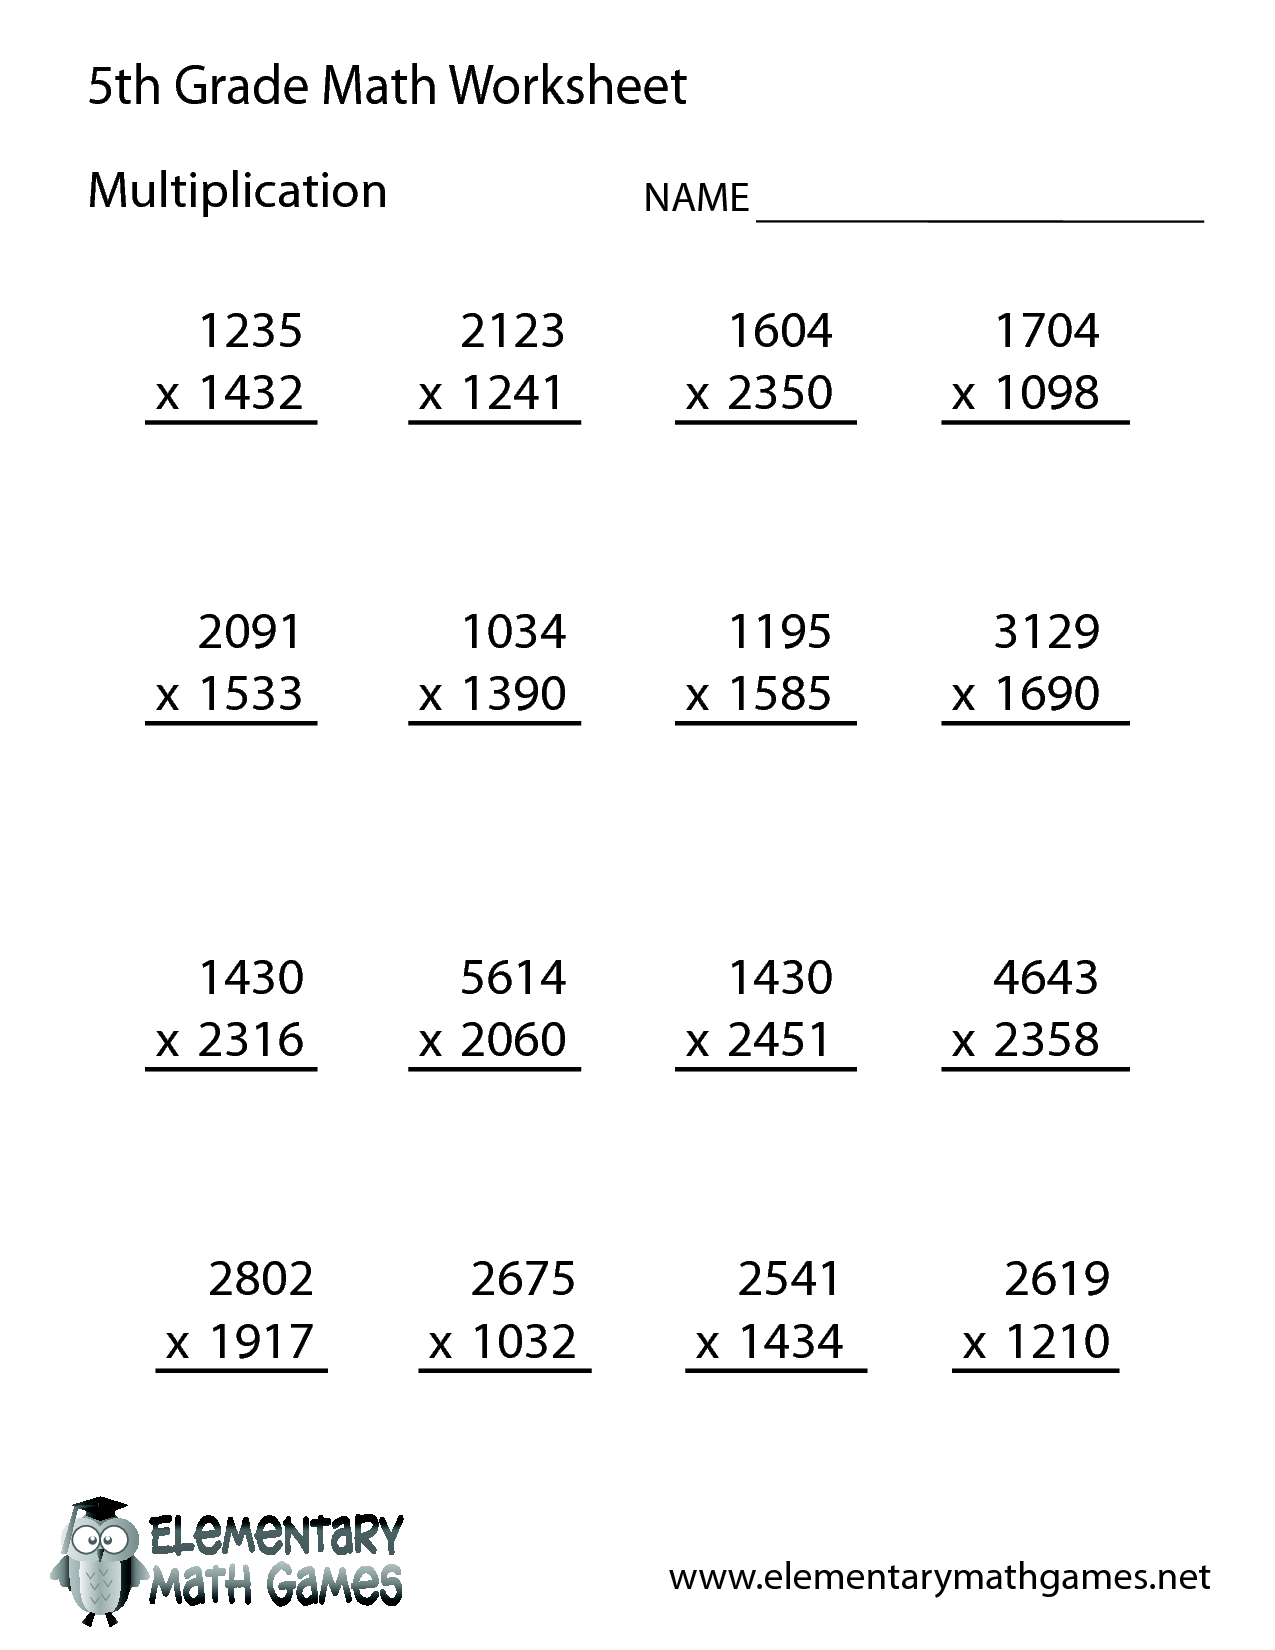 Worksheet Division Math Problems 5th Grade 1000 images about 5th grade math on pinterest worksheets grades and common core math